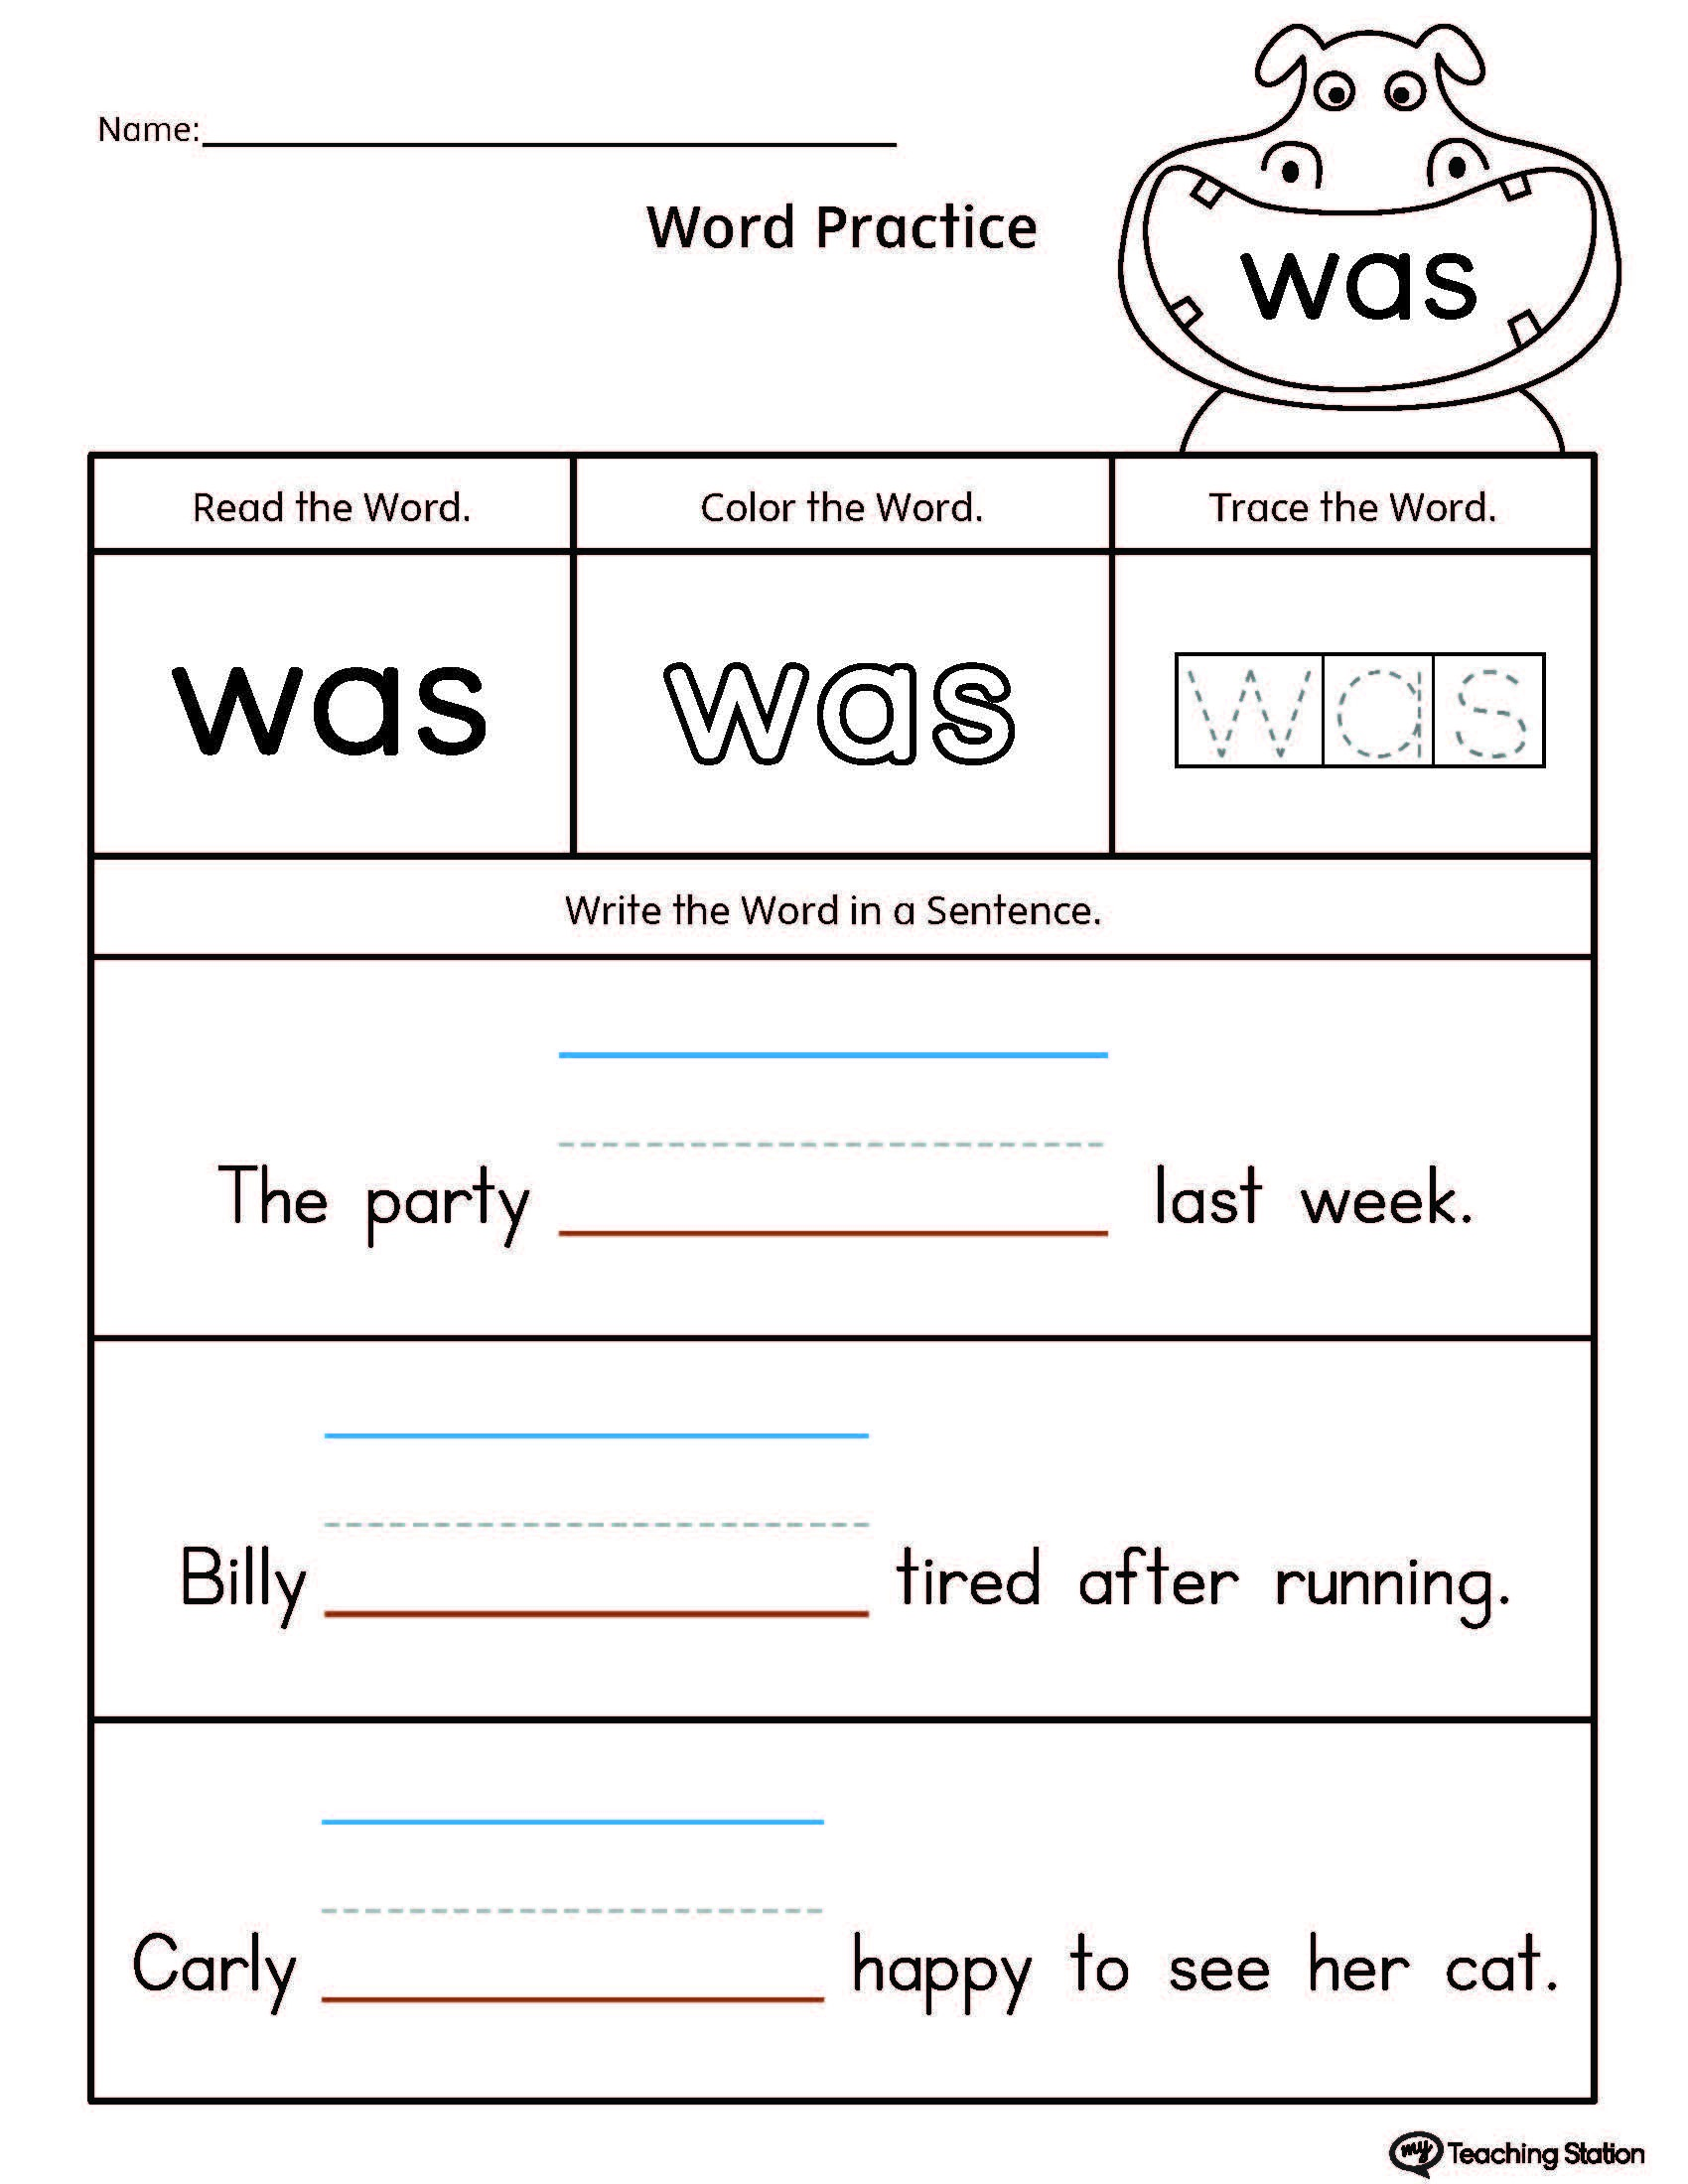 Build Sentences Using Sight Word: Was   School   Sight Words - Free Printable Sight Word Reading Passages